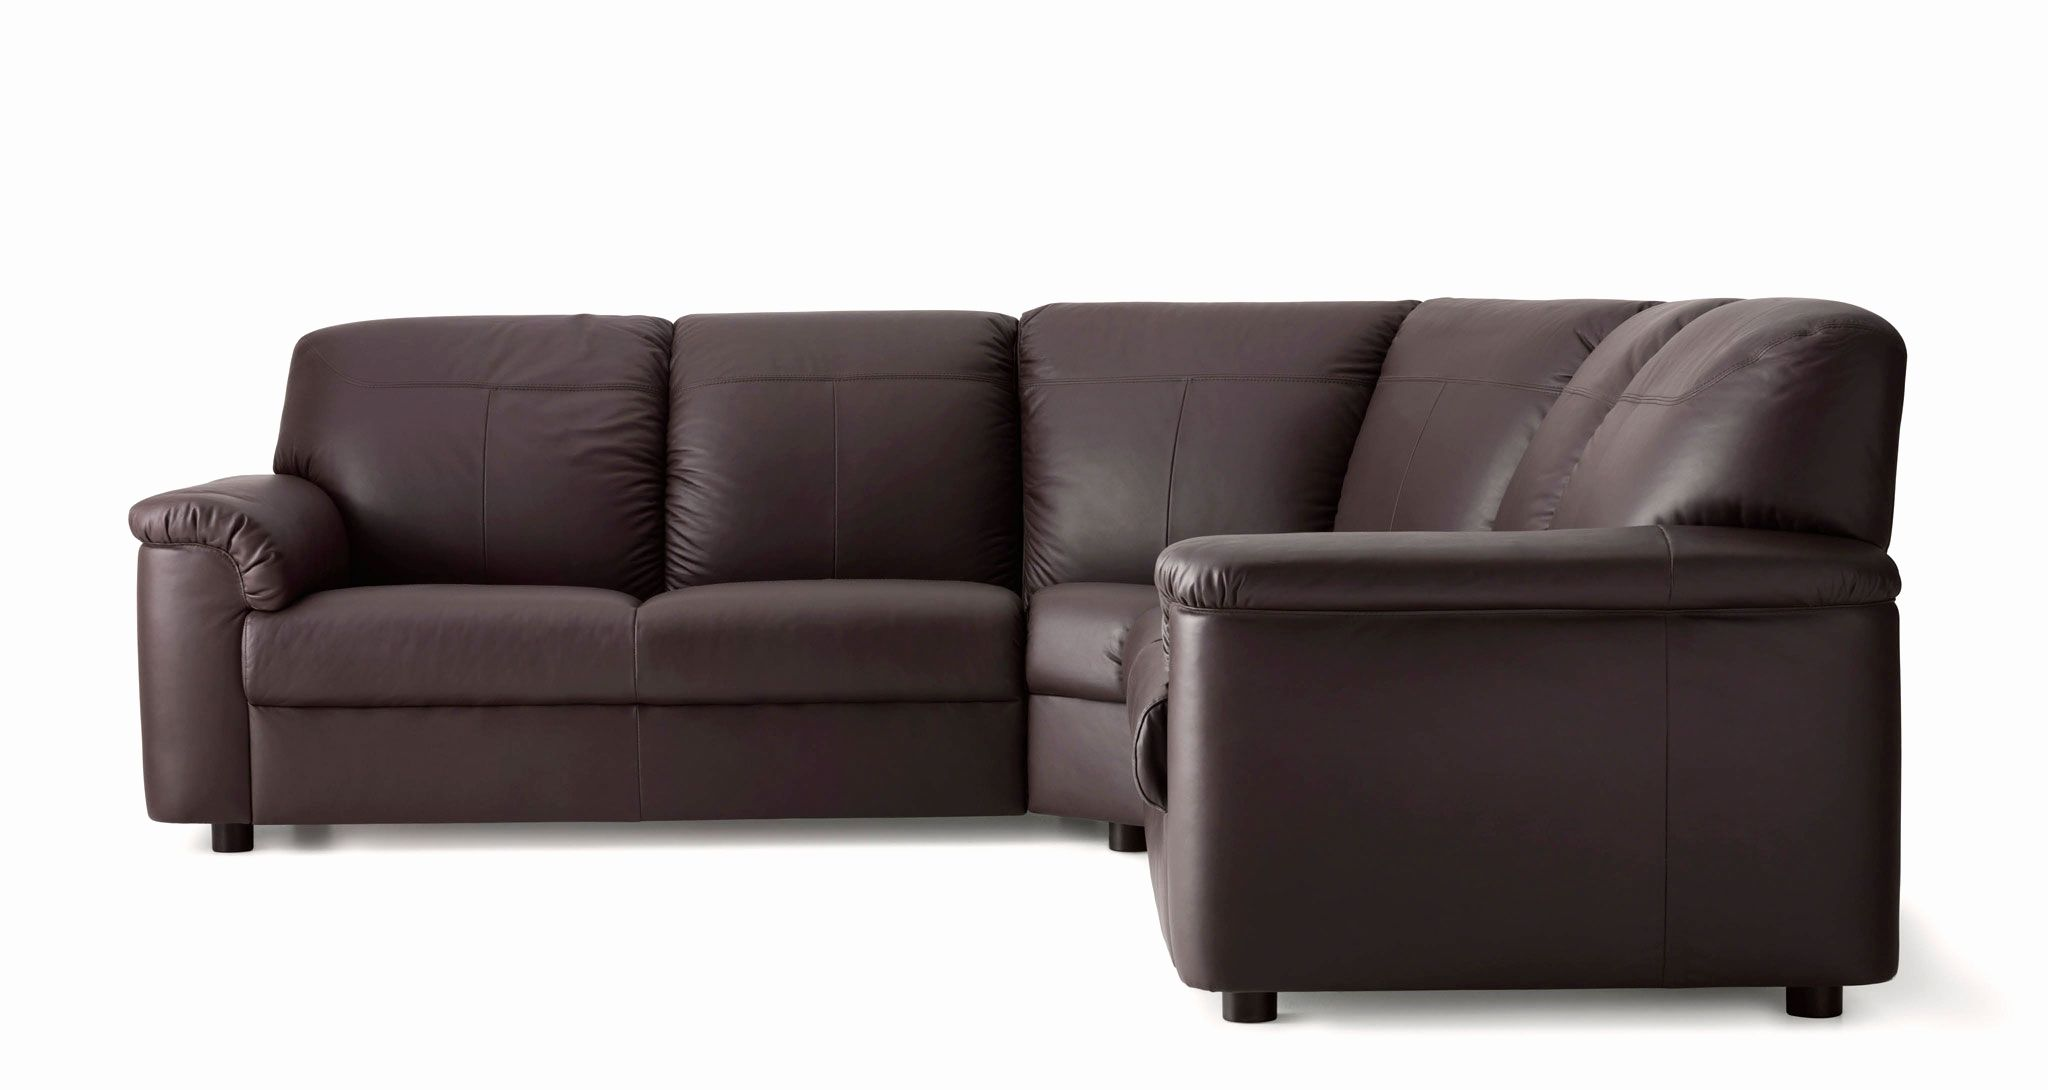 beautiful leather corner sofas disney princess flip out sofa bed small ikea home decor apartment size sectional